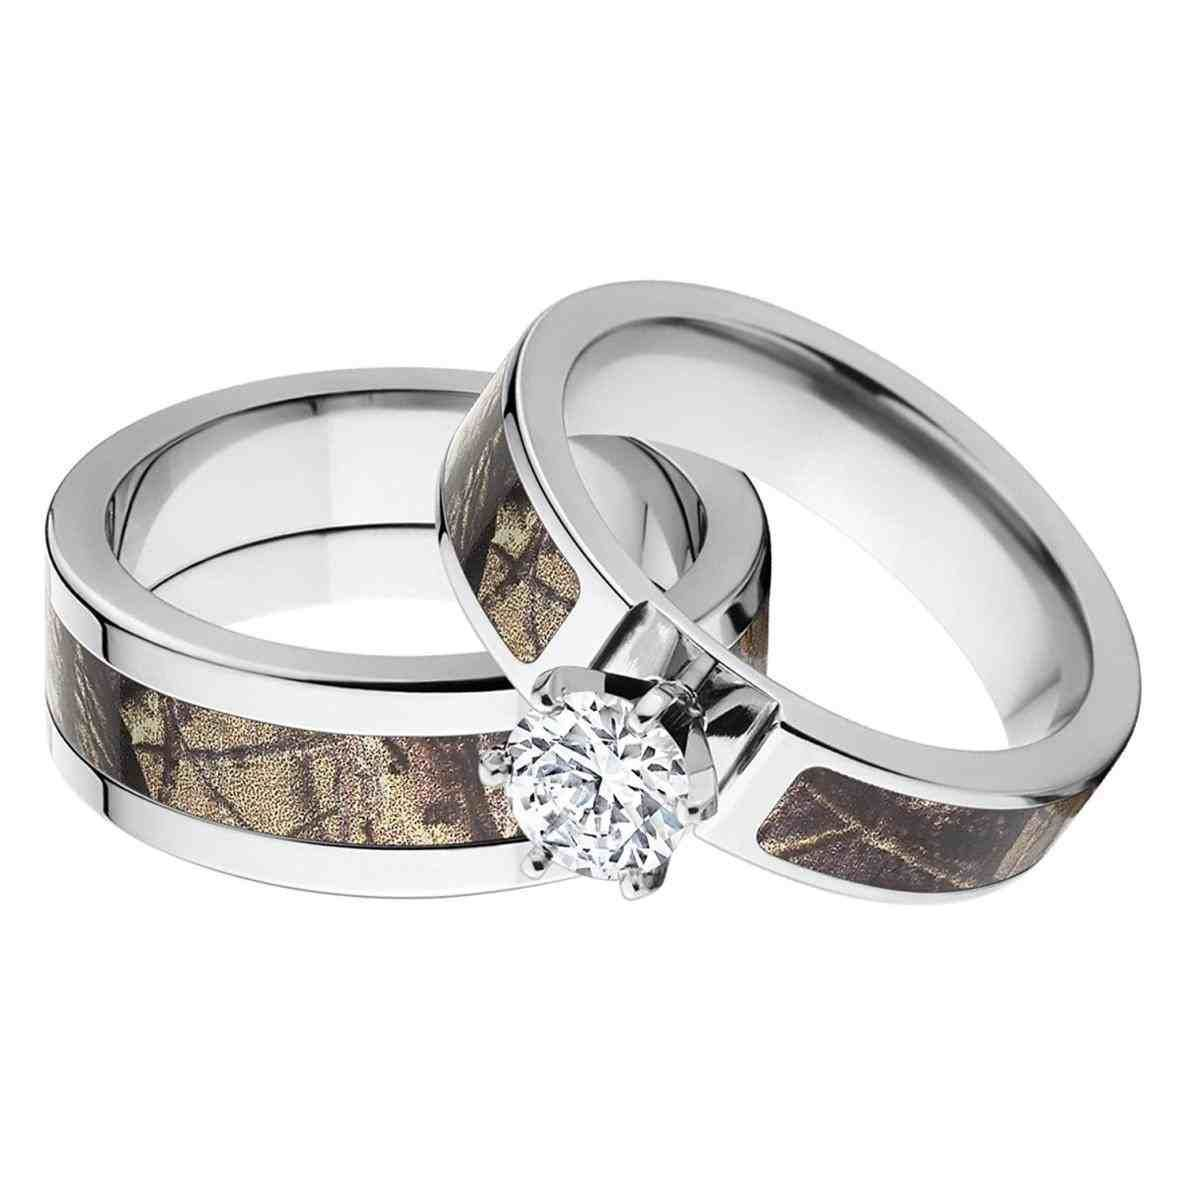 Top 10 New Post Unique Wedding Ring Sets For Him And Her Visit Wedbridal Site Camo Wedding Rings Sets Camo Wedding Rings Wedding Rings Sets His And Hers